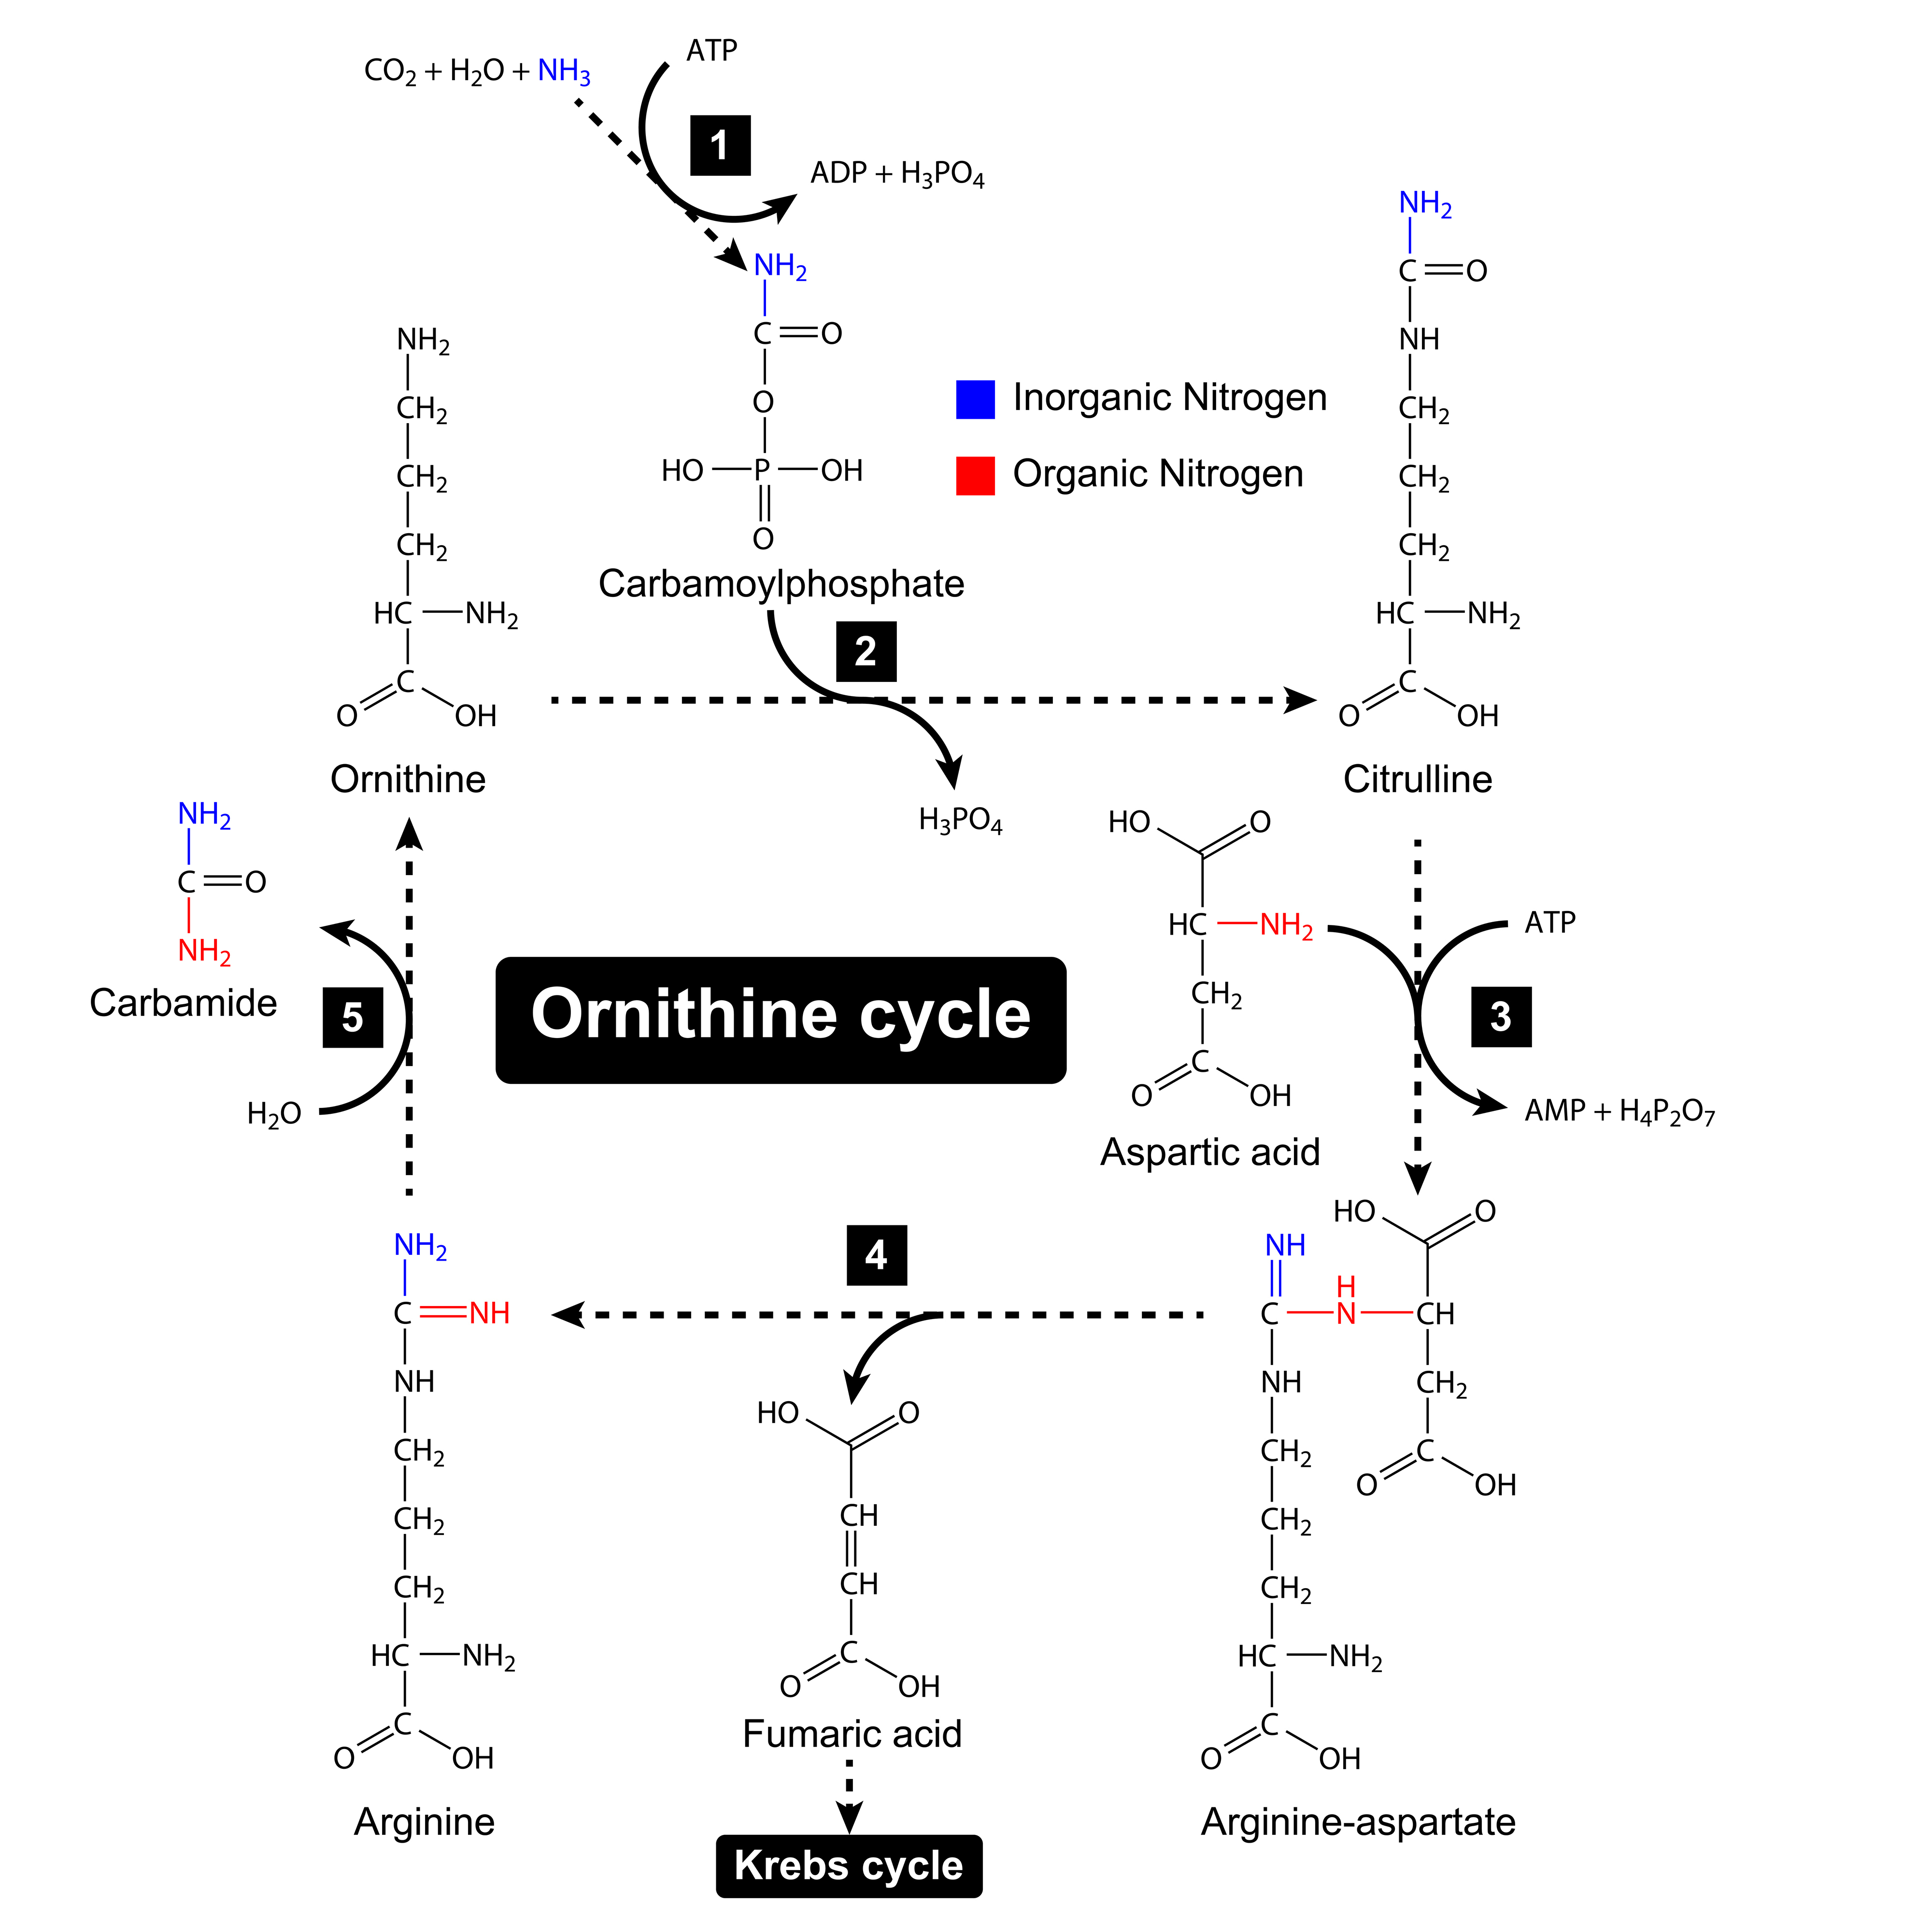 Arginine and citrulline are crucial amino acids in ornithine cycle - an important part of nitrogen balance in your organism